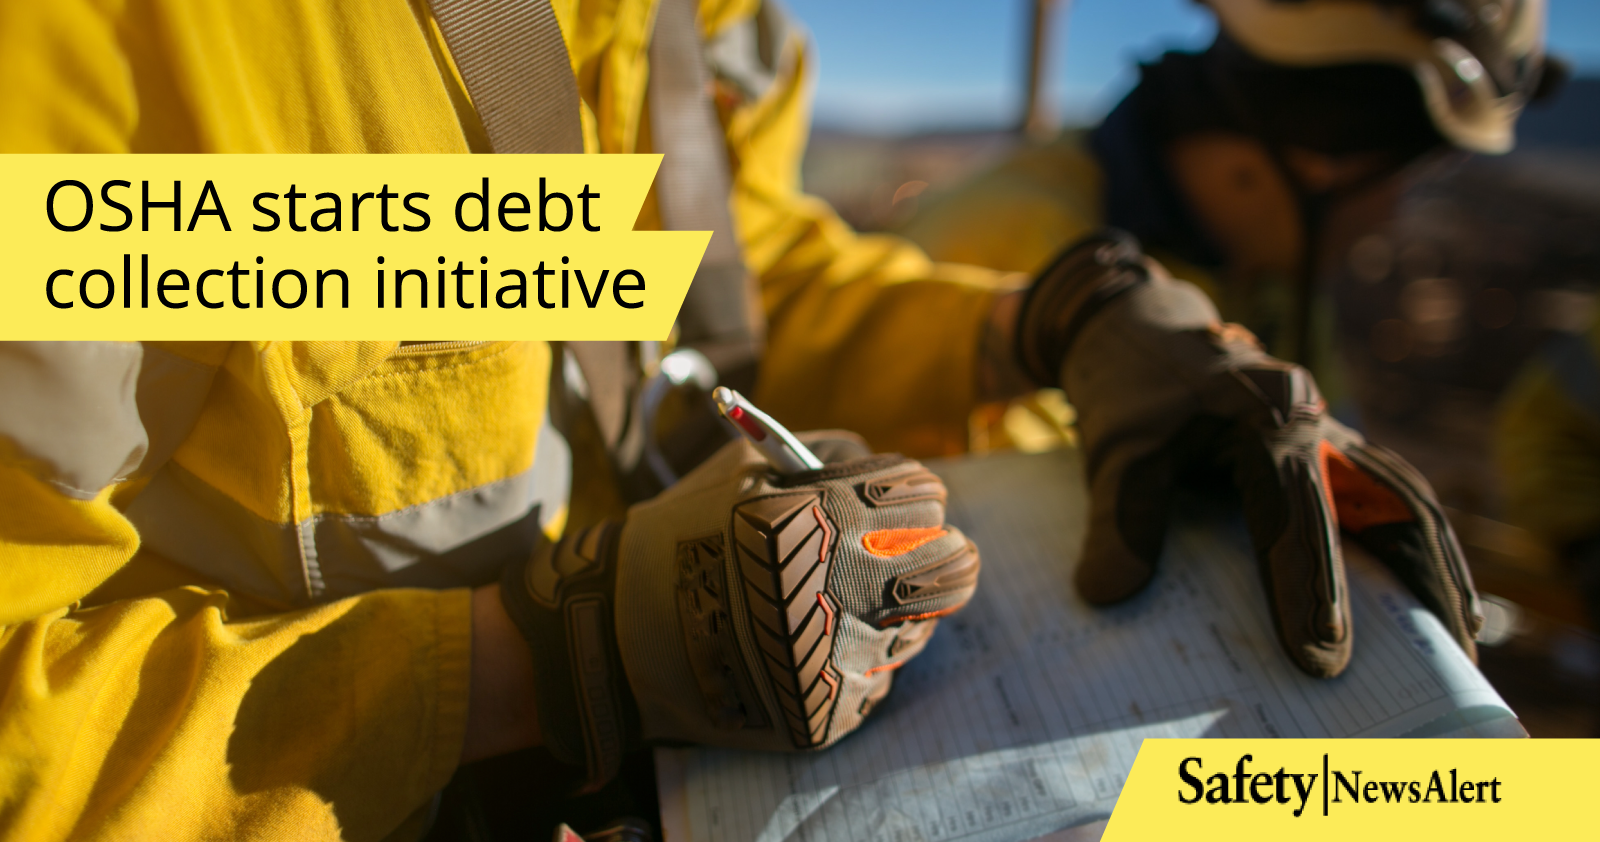 OSHA Starts Debt Collection Initiative